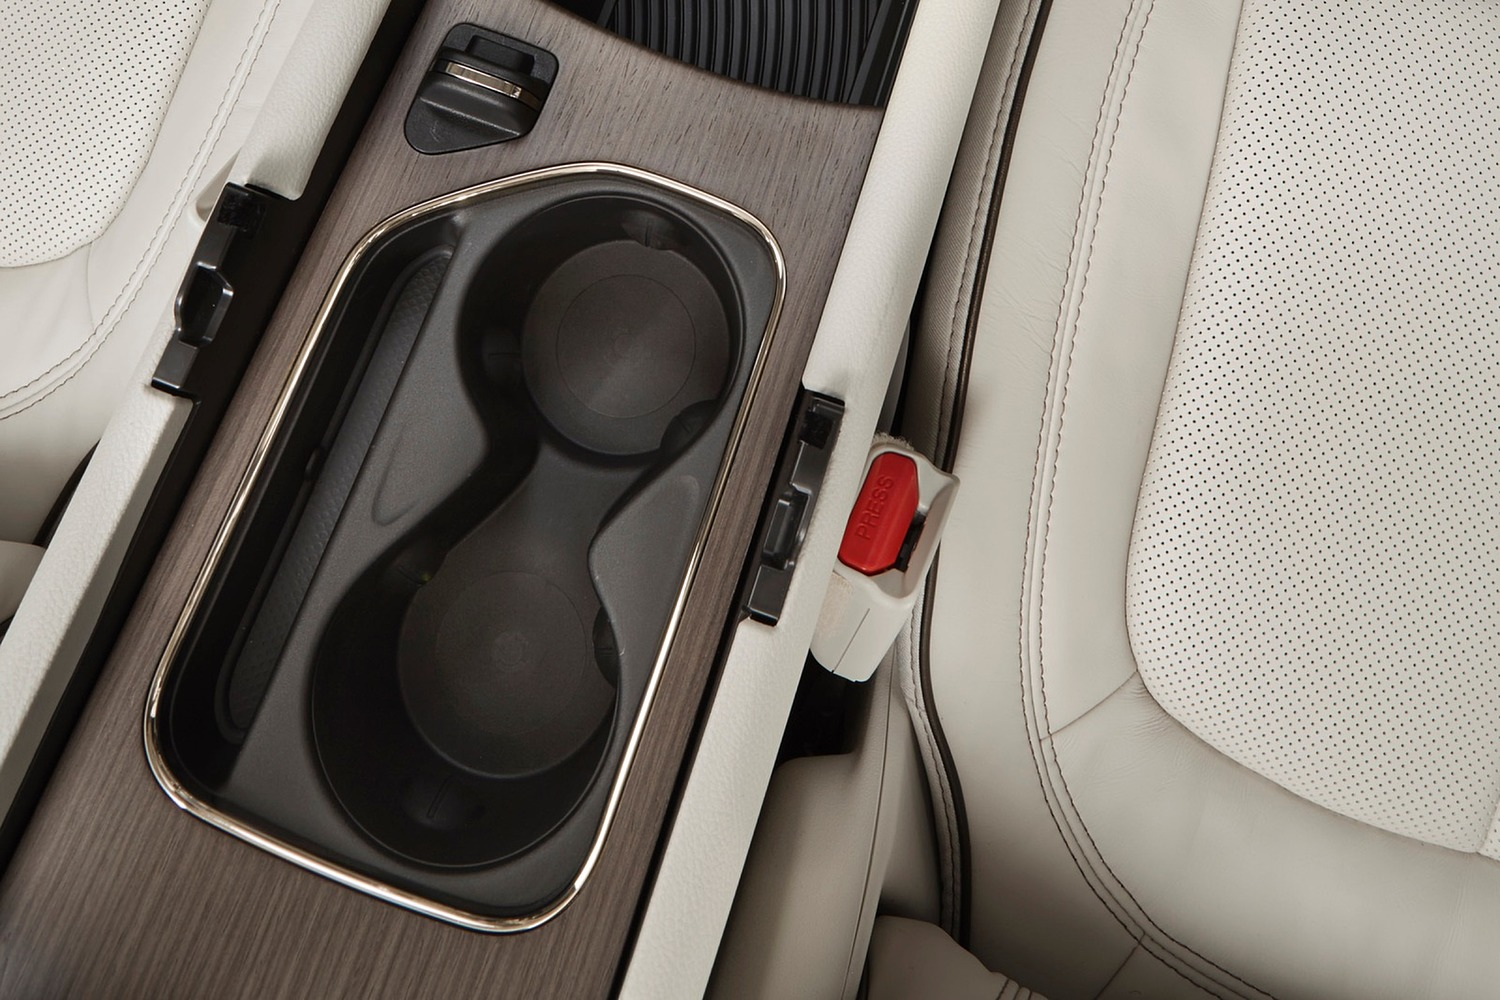 Chrysler 200 C Sedan Cupholders (2015 model year shown)